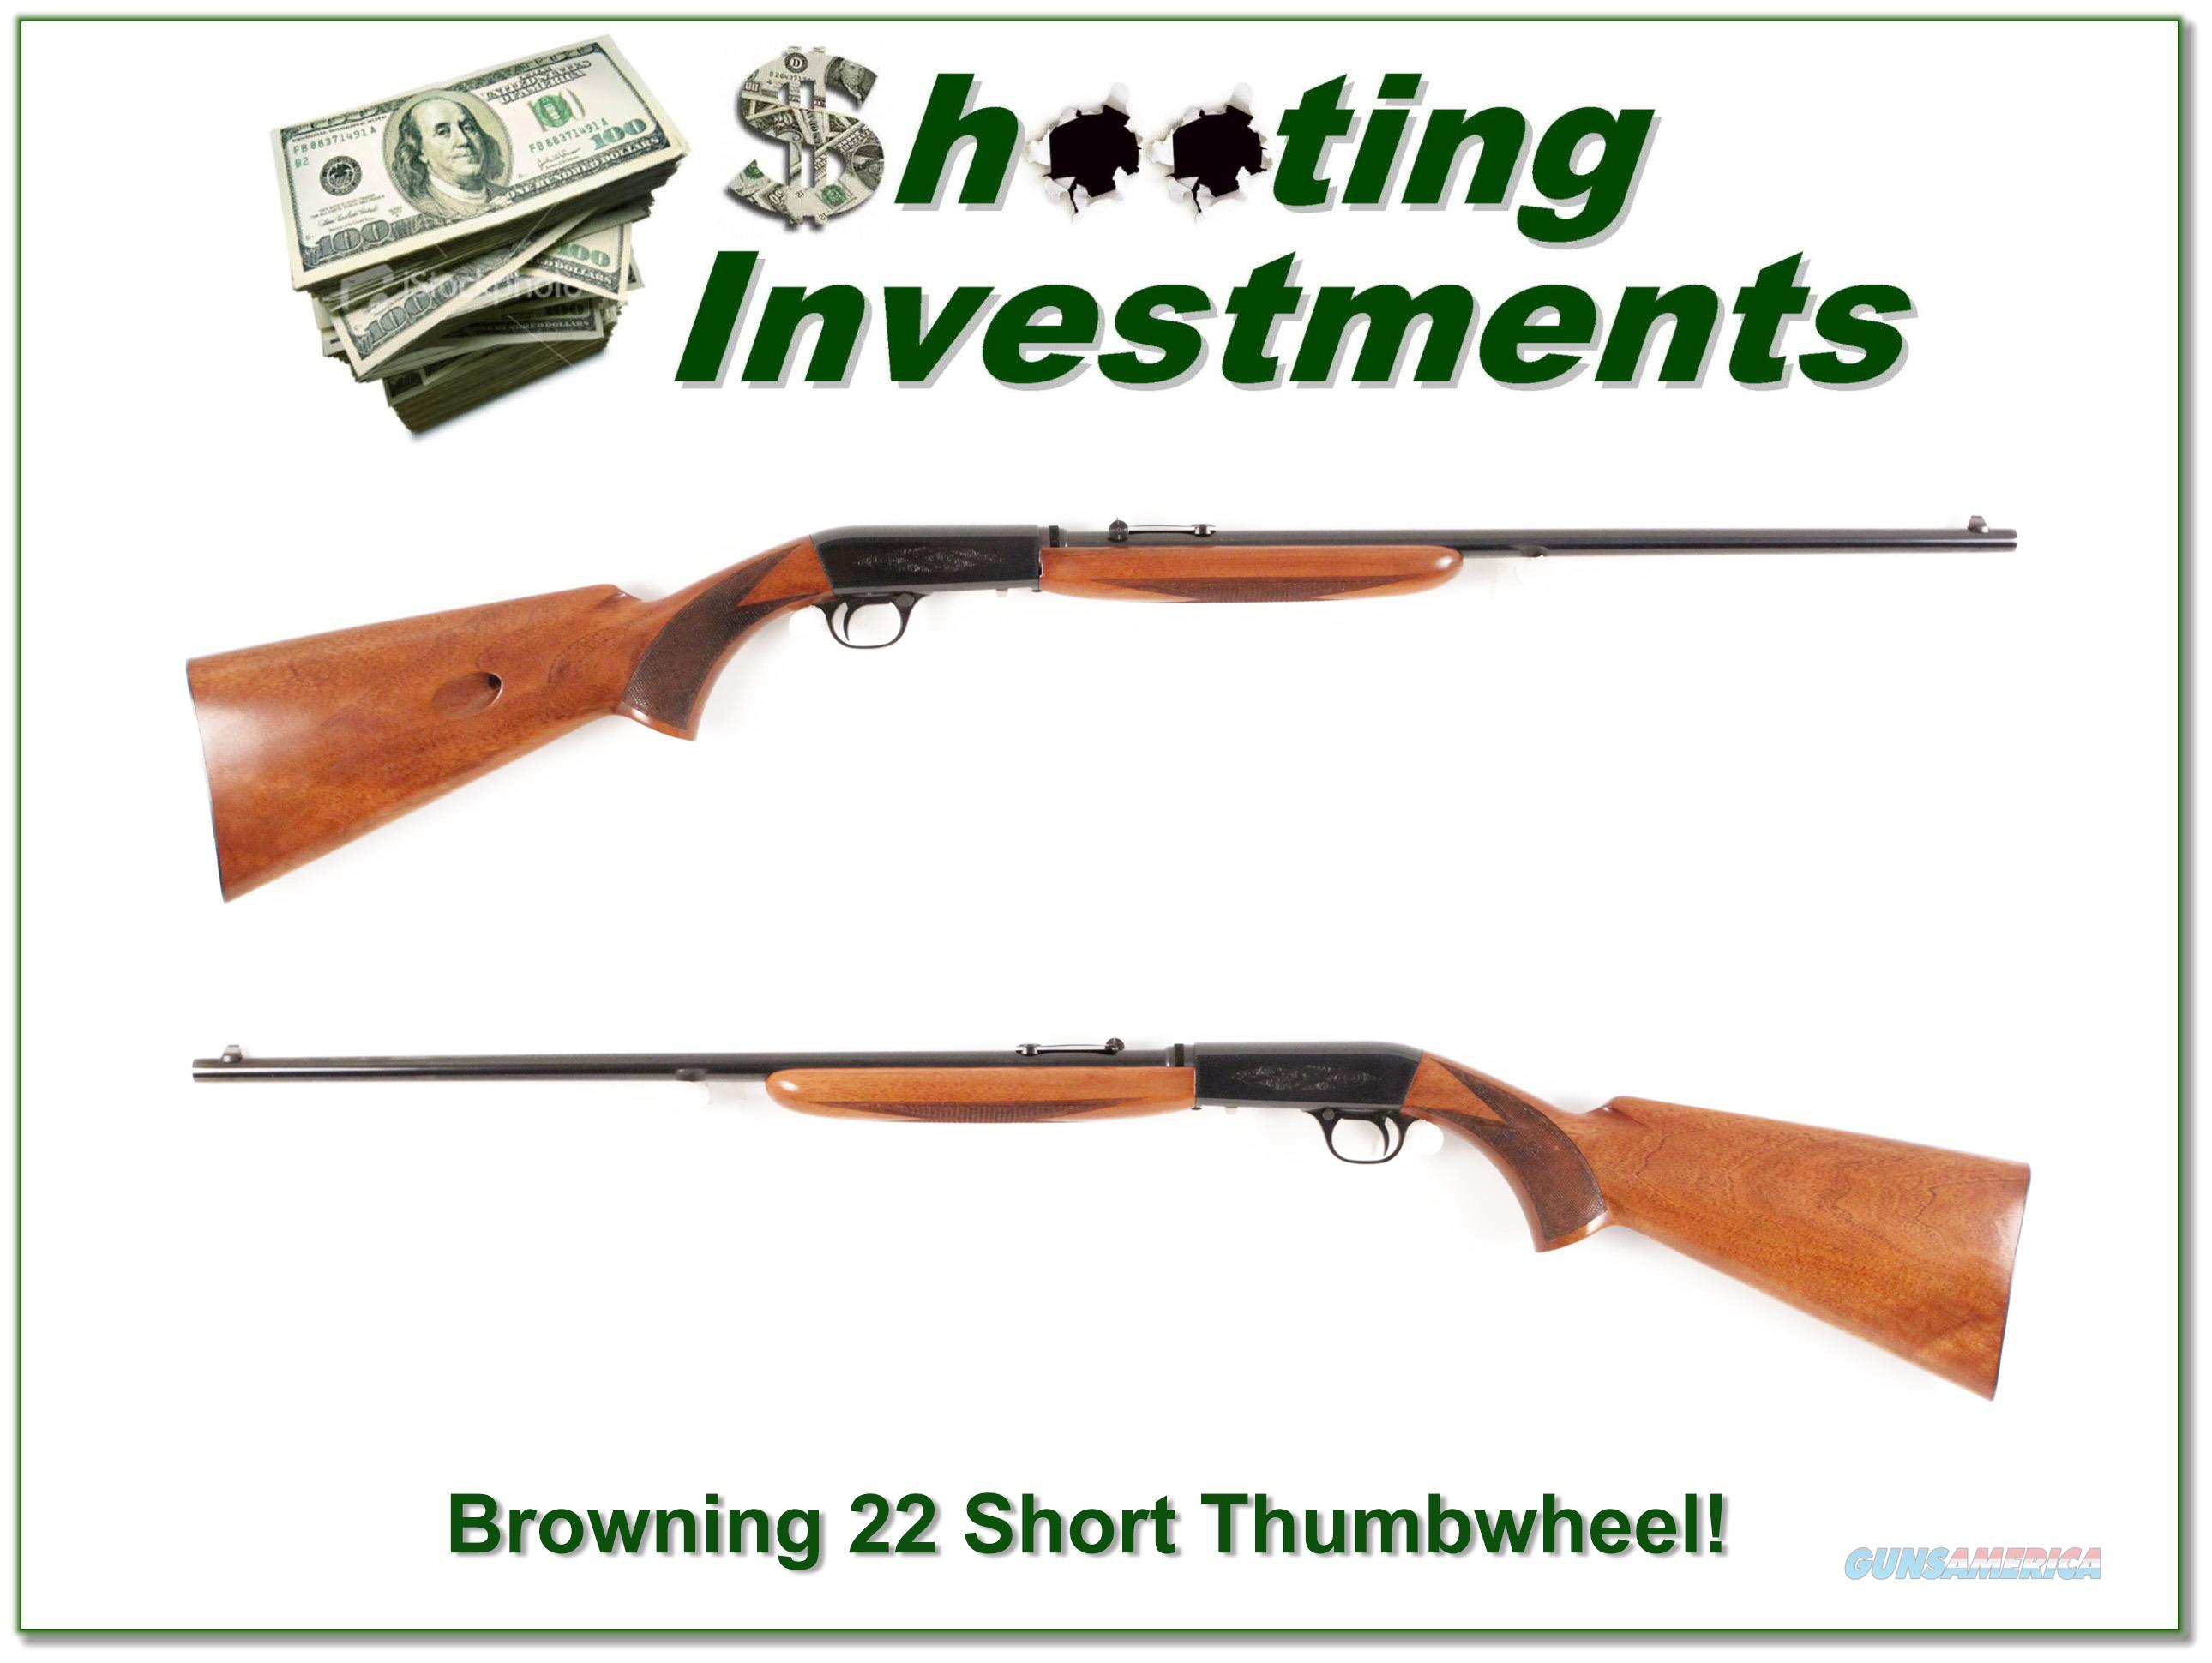 Browning 22 Auto Thumbwheel Short COLLECTOR!  Guns > Rifles > Browning Rifles > Semi Auto > Hunting